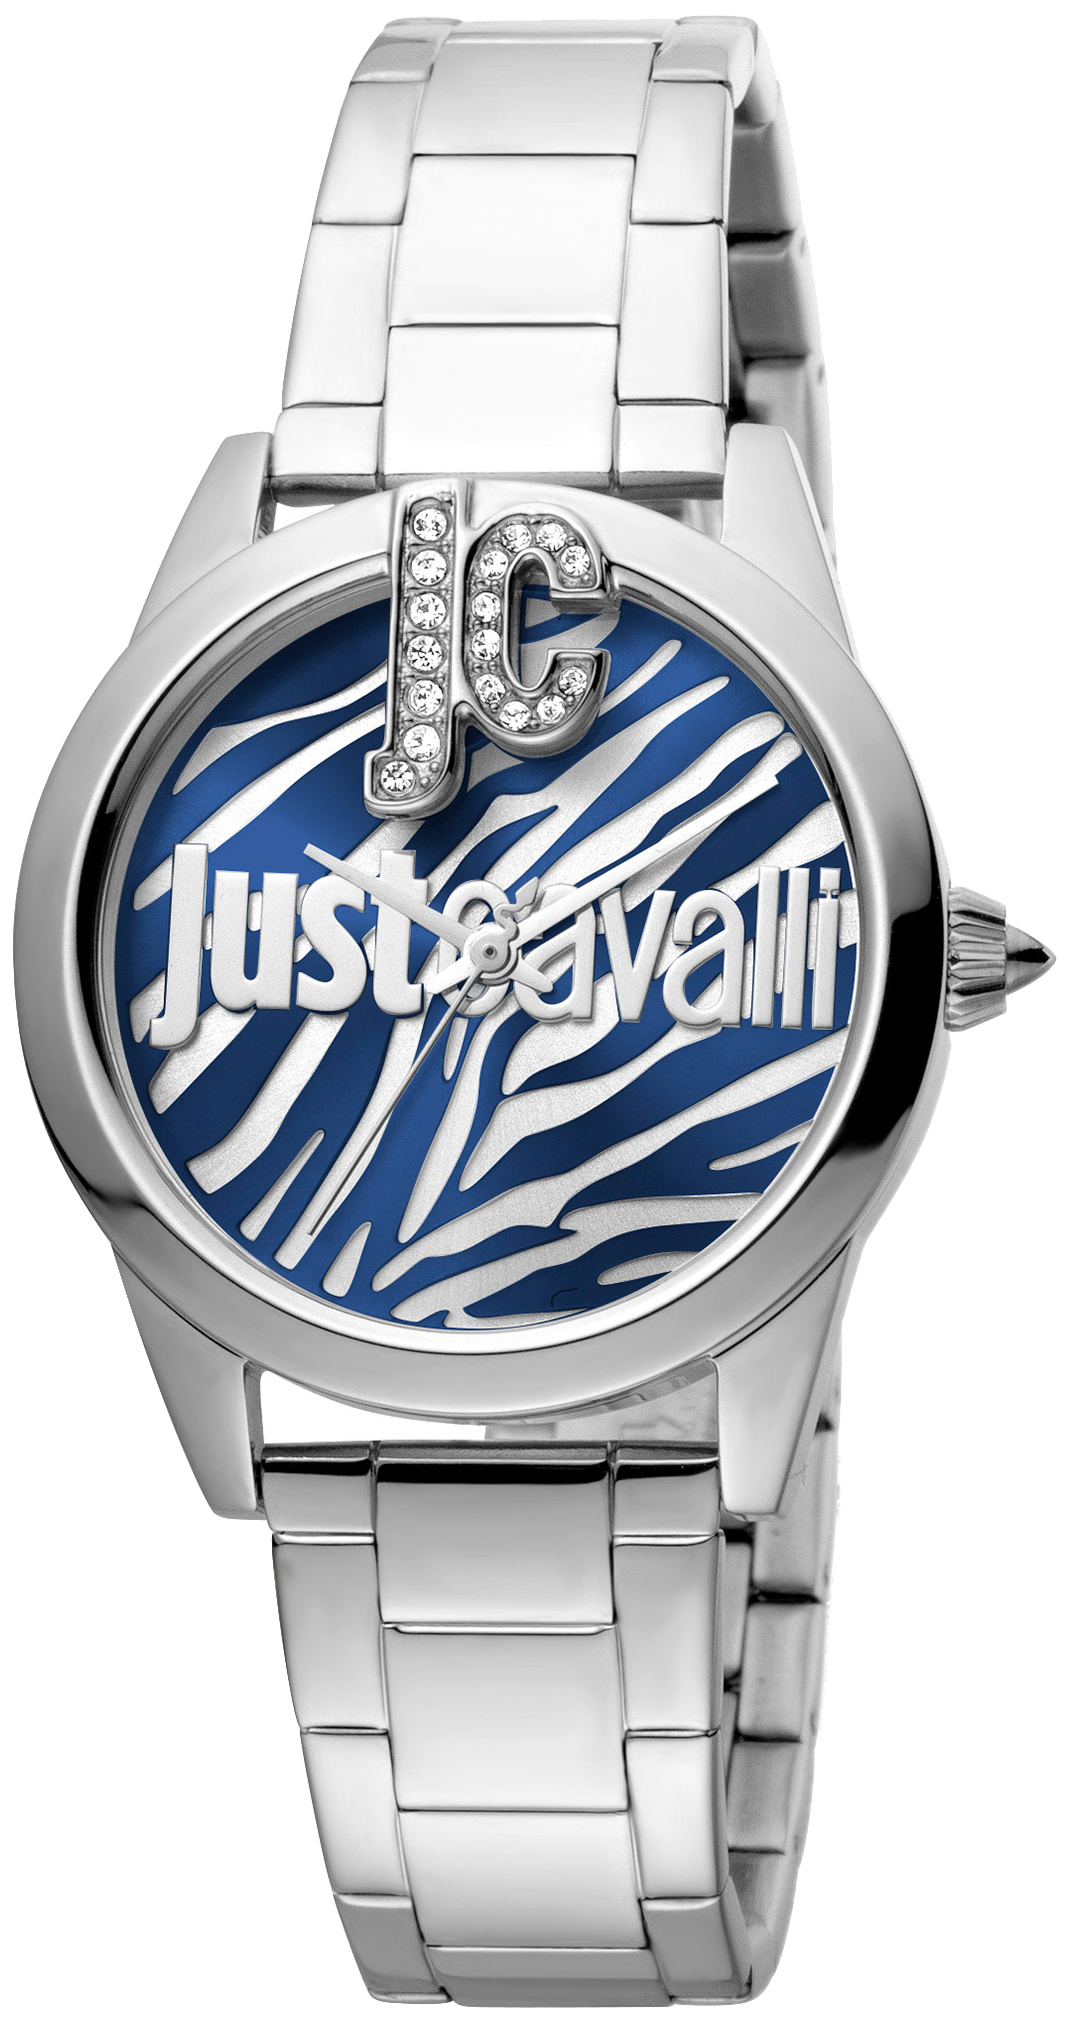 Just Cavalli 99999 Dameklokke JC1L099M0065 Flerfarget/Stål Ø32 mm - Just Cavalli